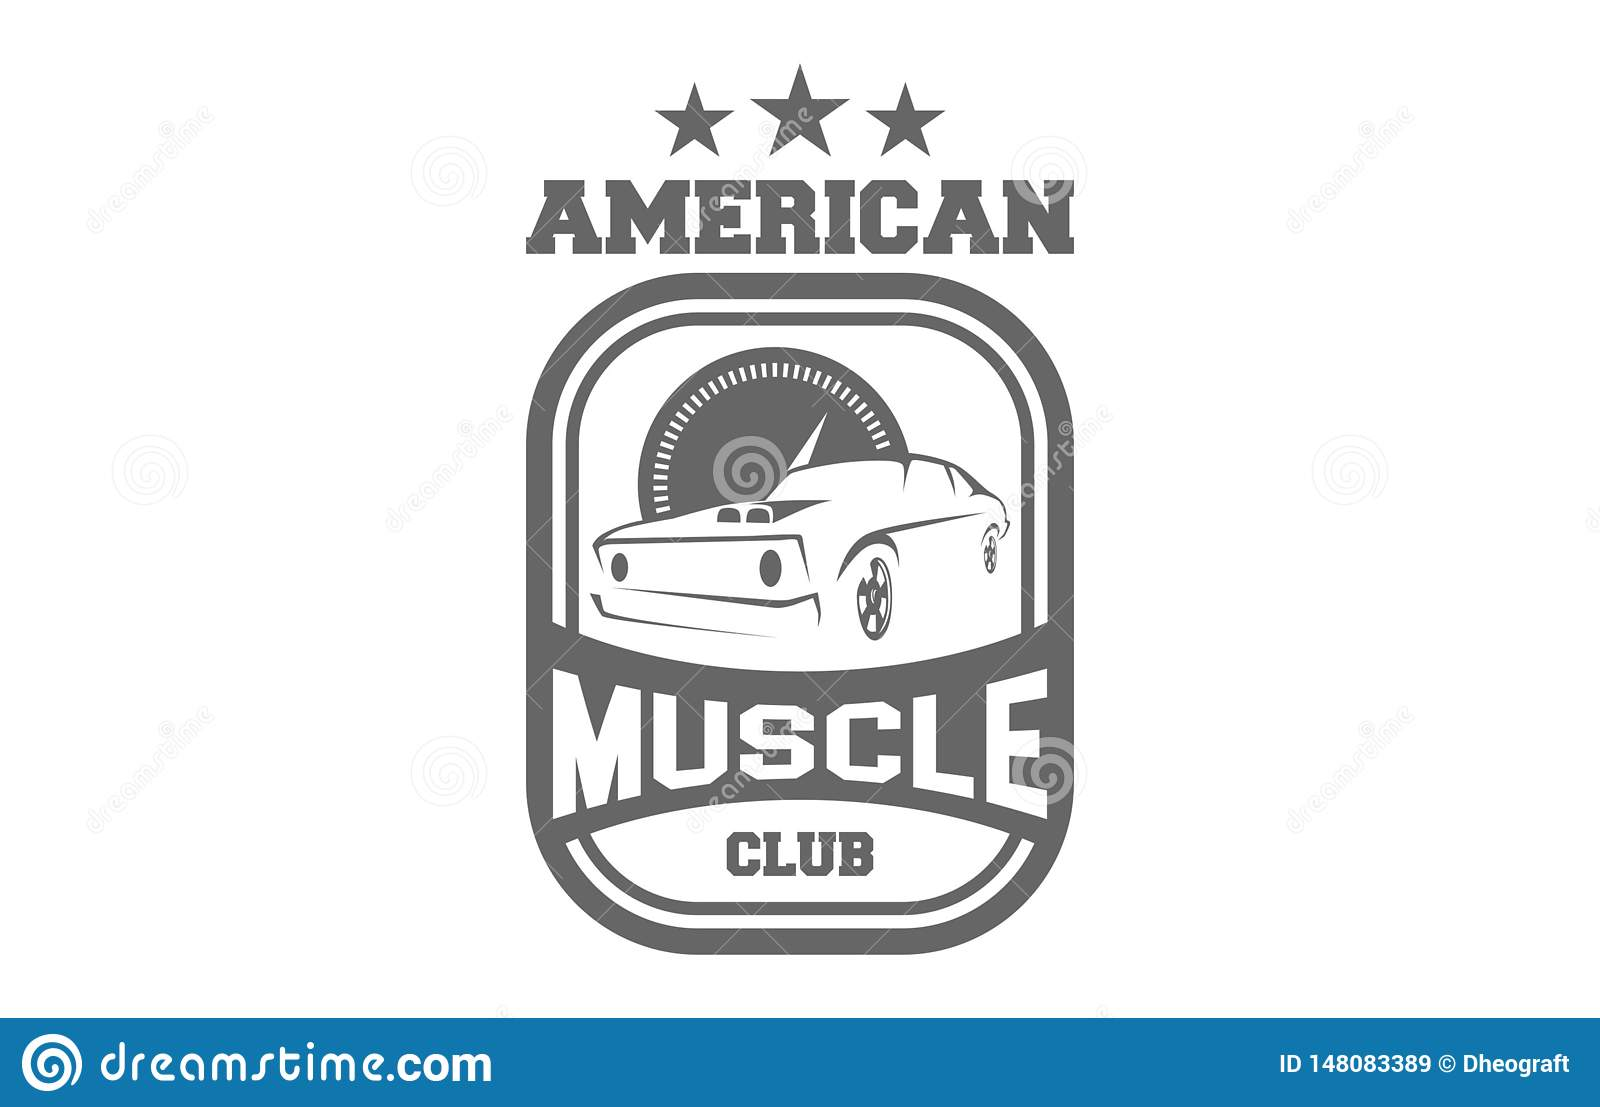 American Muscle Club Logo